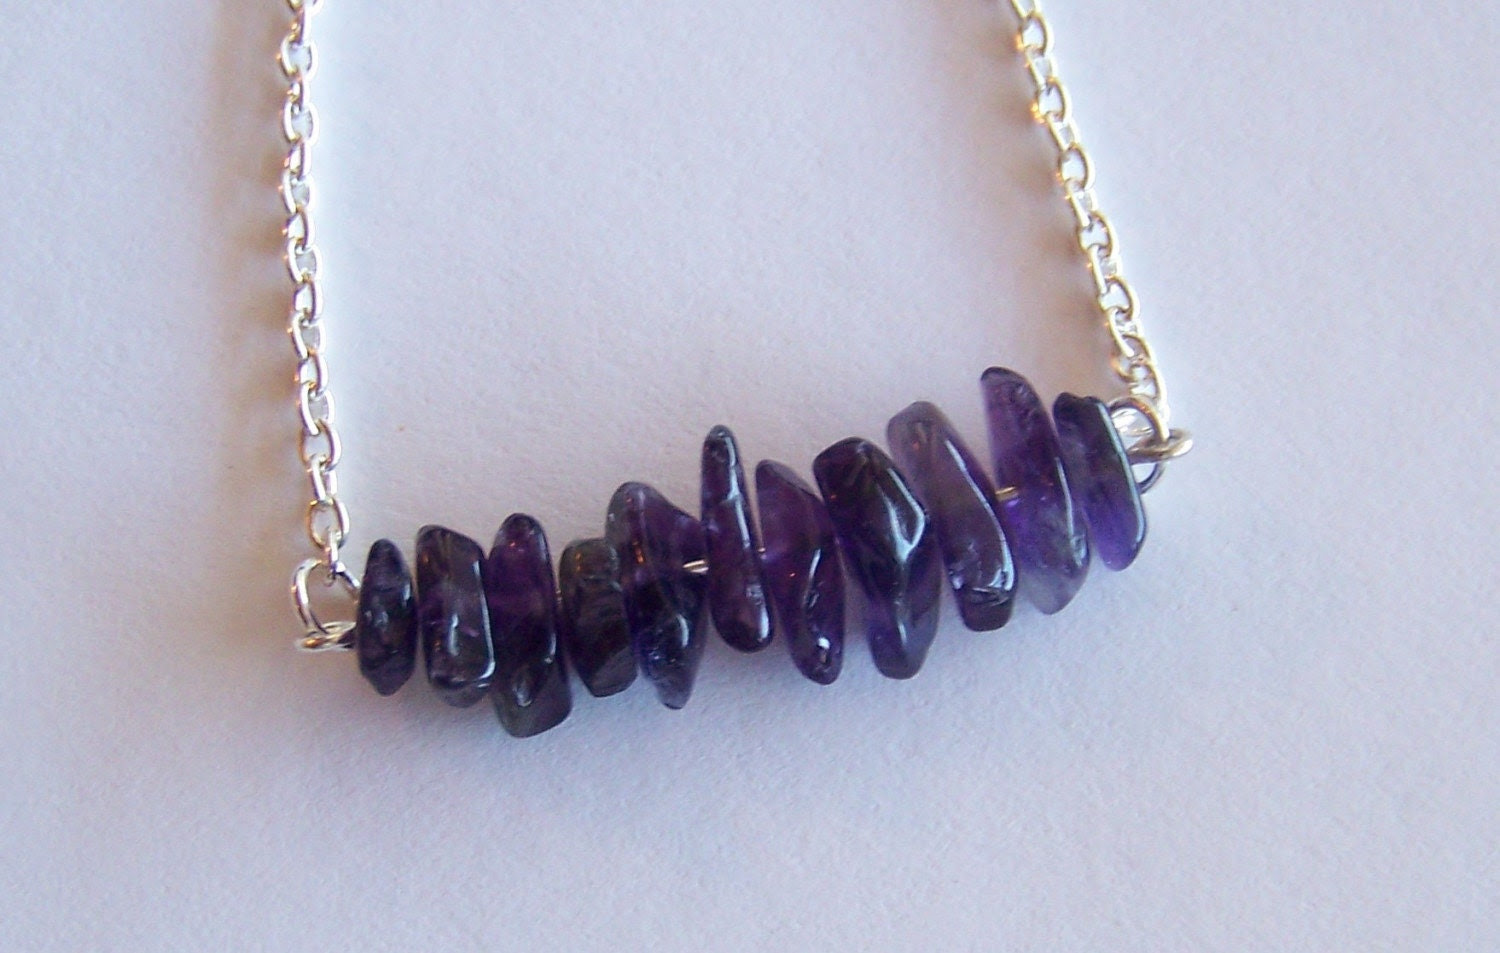 SALE - royal chip - a necklace of recycled jewelry